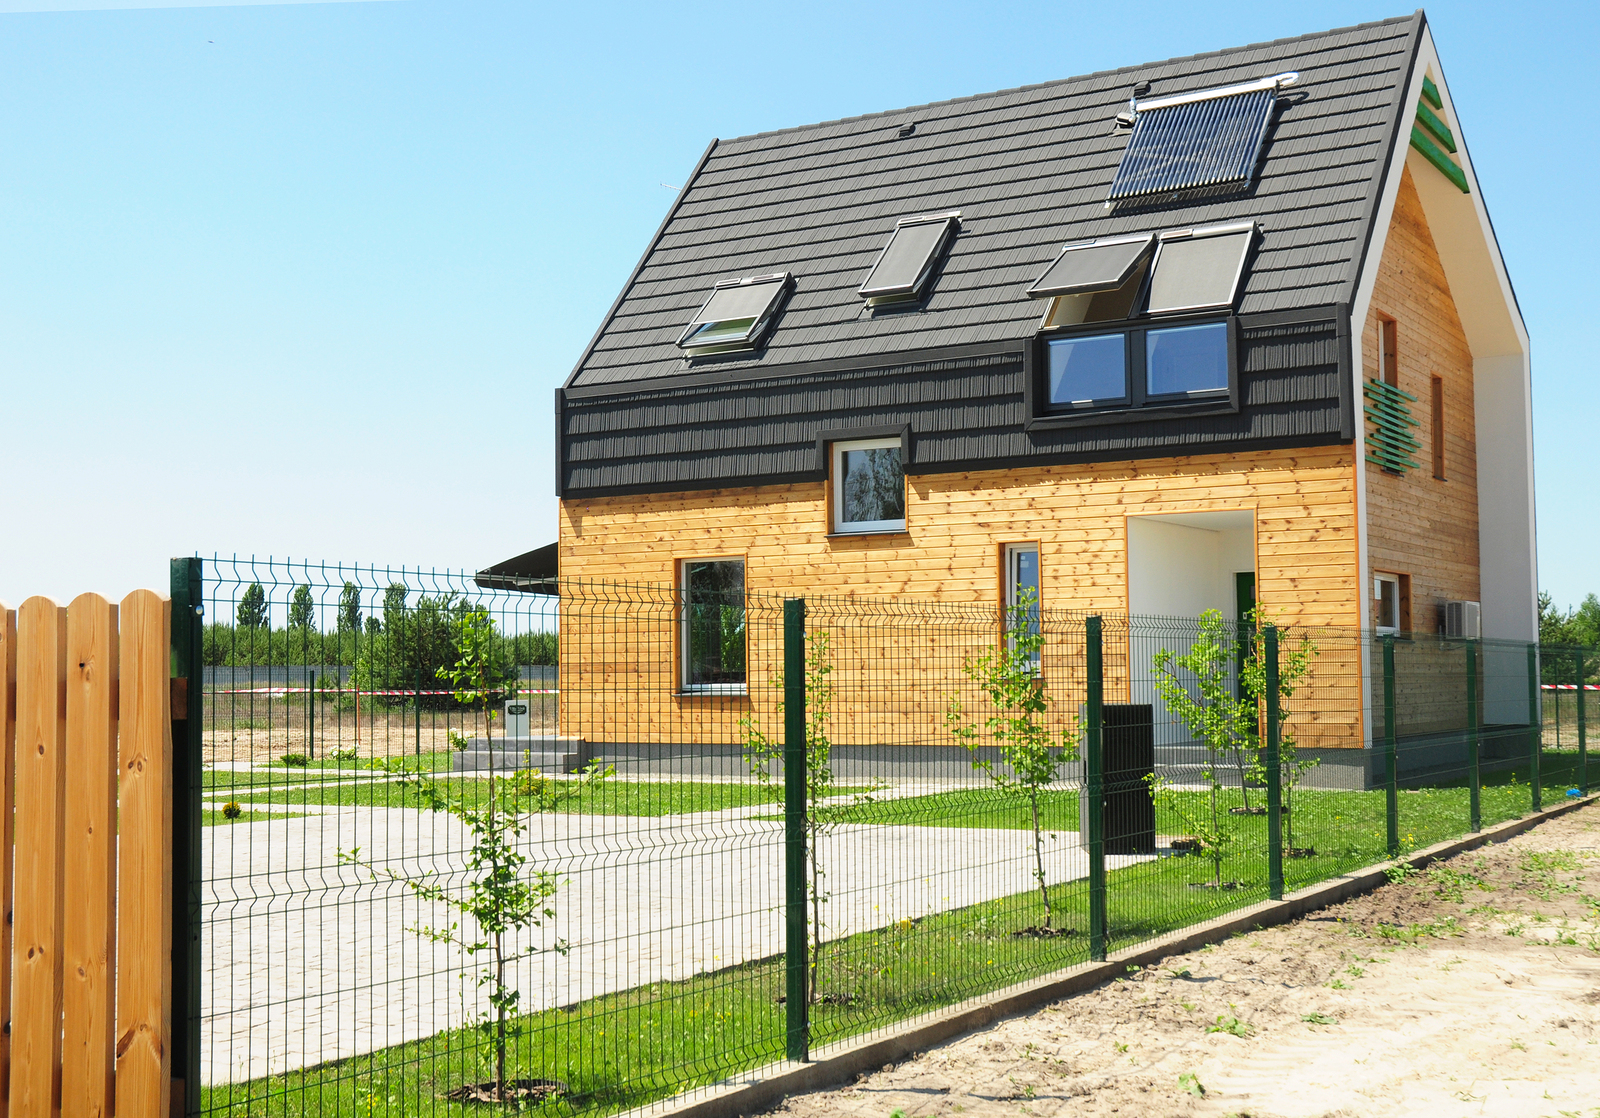 Building A Sustainable Future Through Passive House Designs